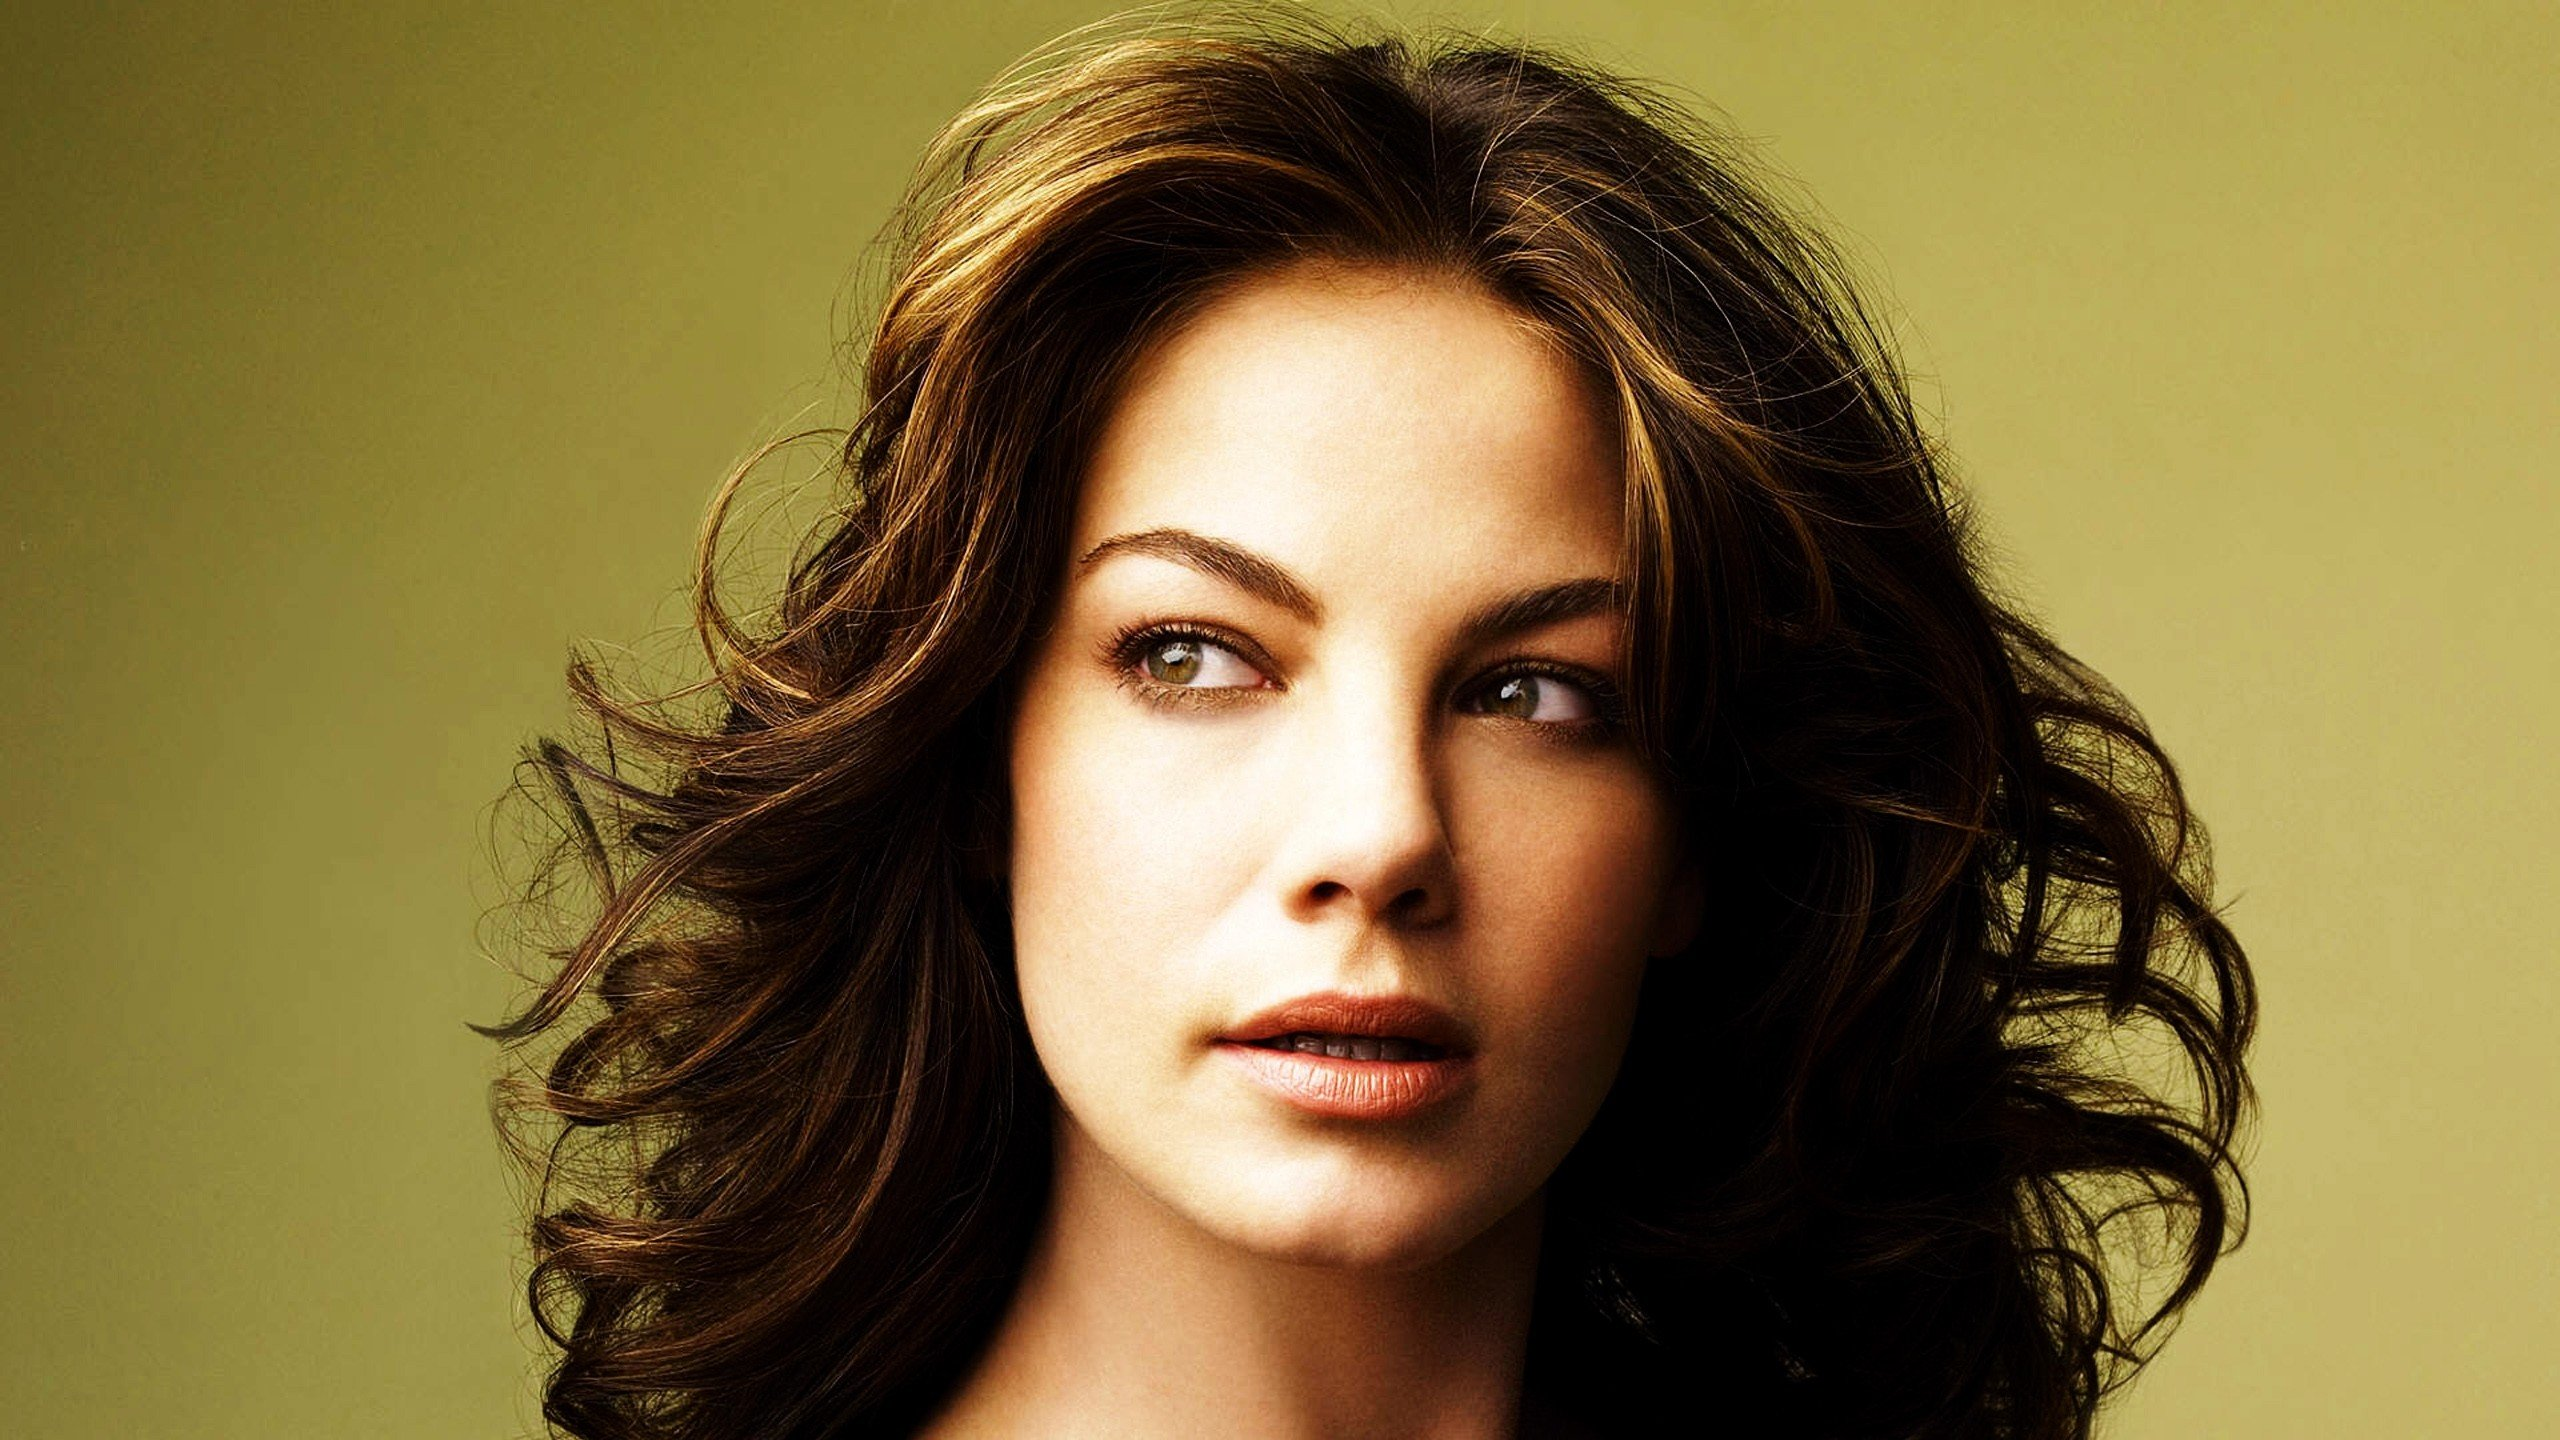 Awesome Michelle Monaghan free wallpaper ID:63112 for hd 2560x1440 PC